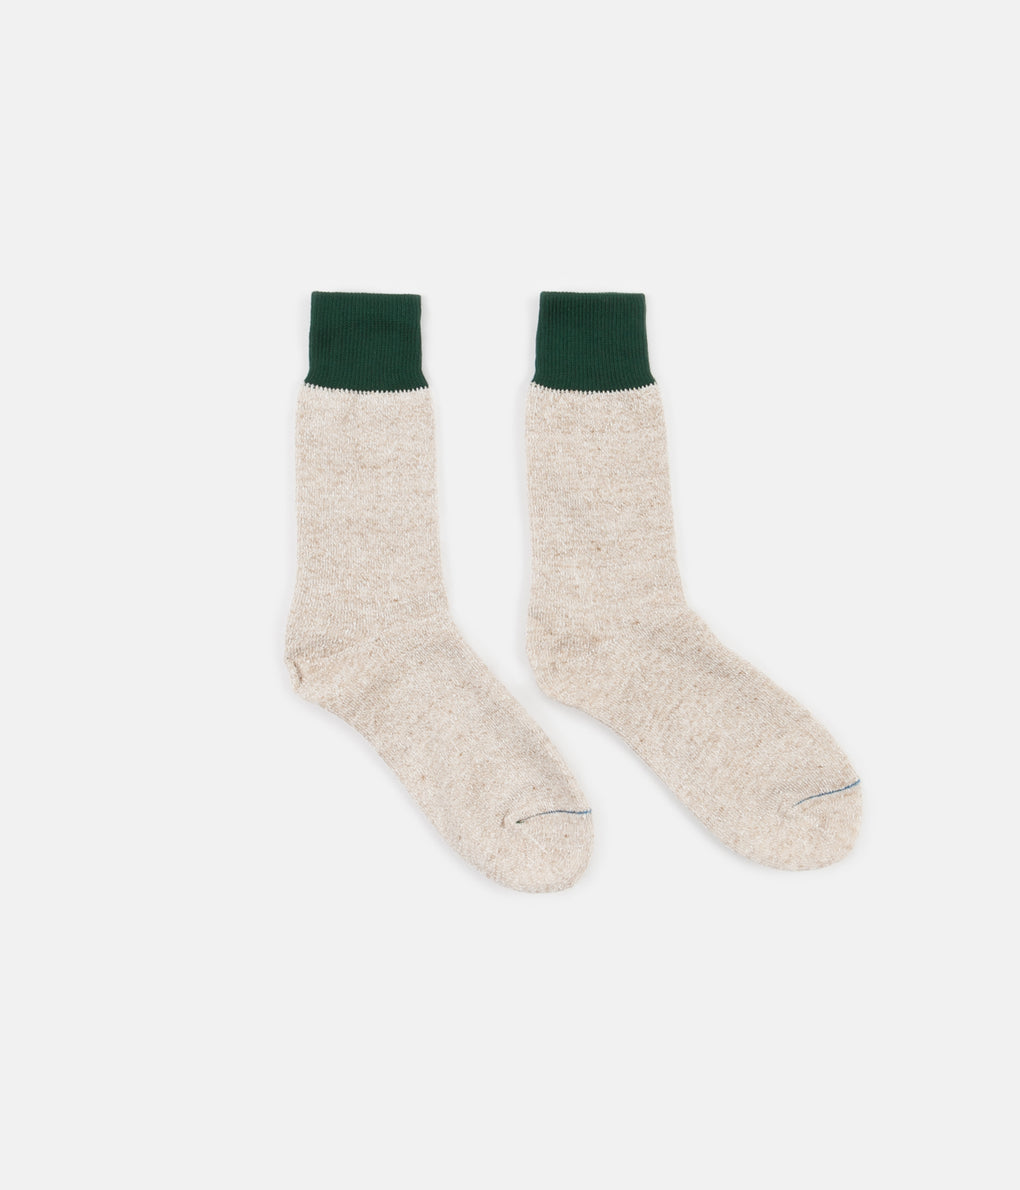 RoToTo Double Face Silk Blend Socks - Green / Beige